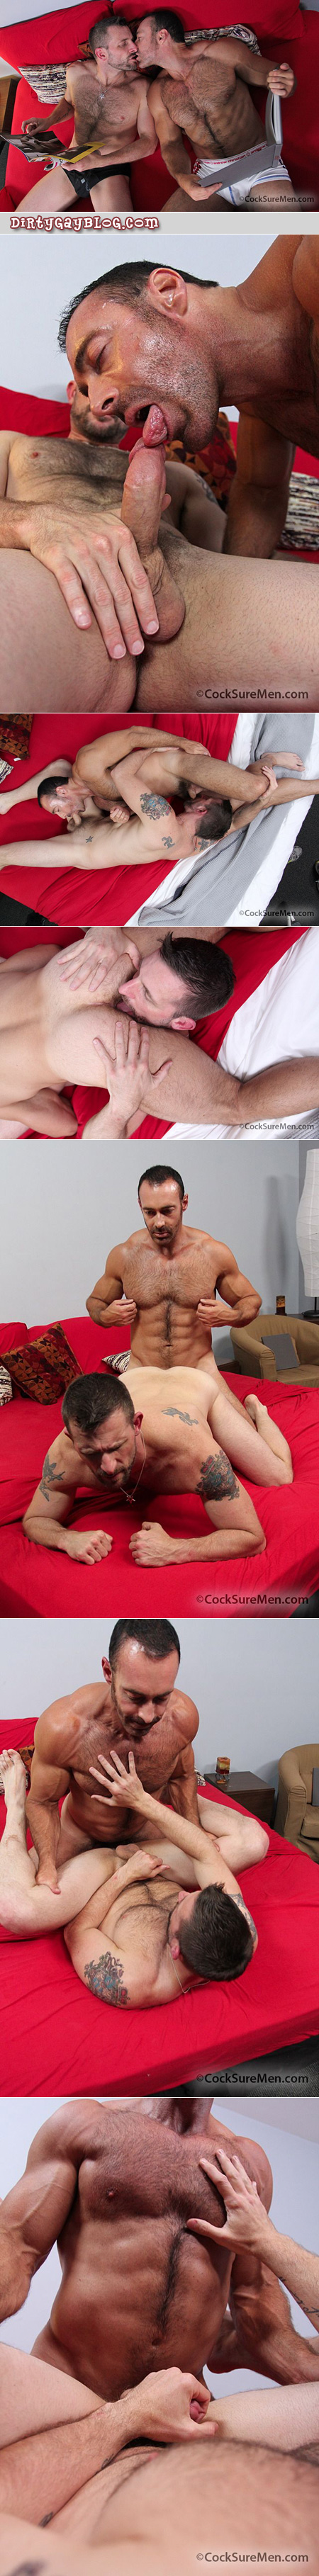 Veiny and muscular hairy guy fucks an eager hairy bottom after swapping gay rim jobs.